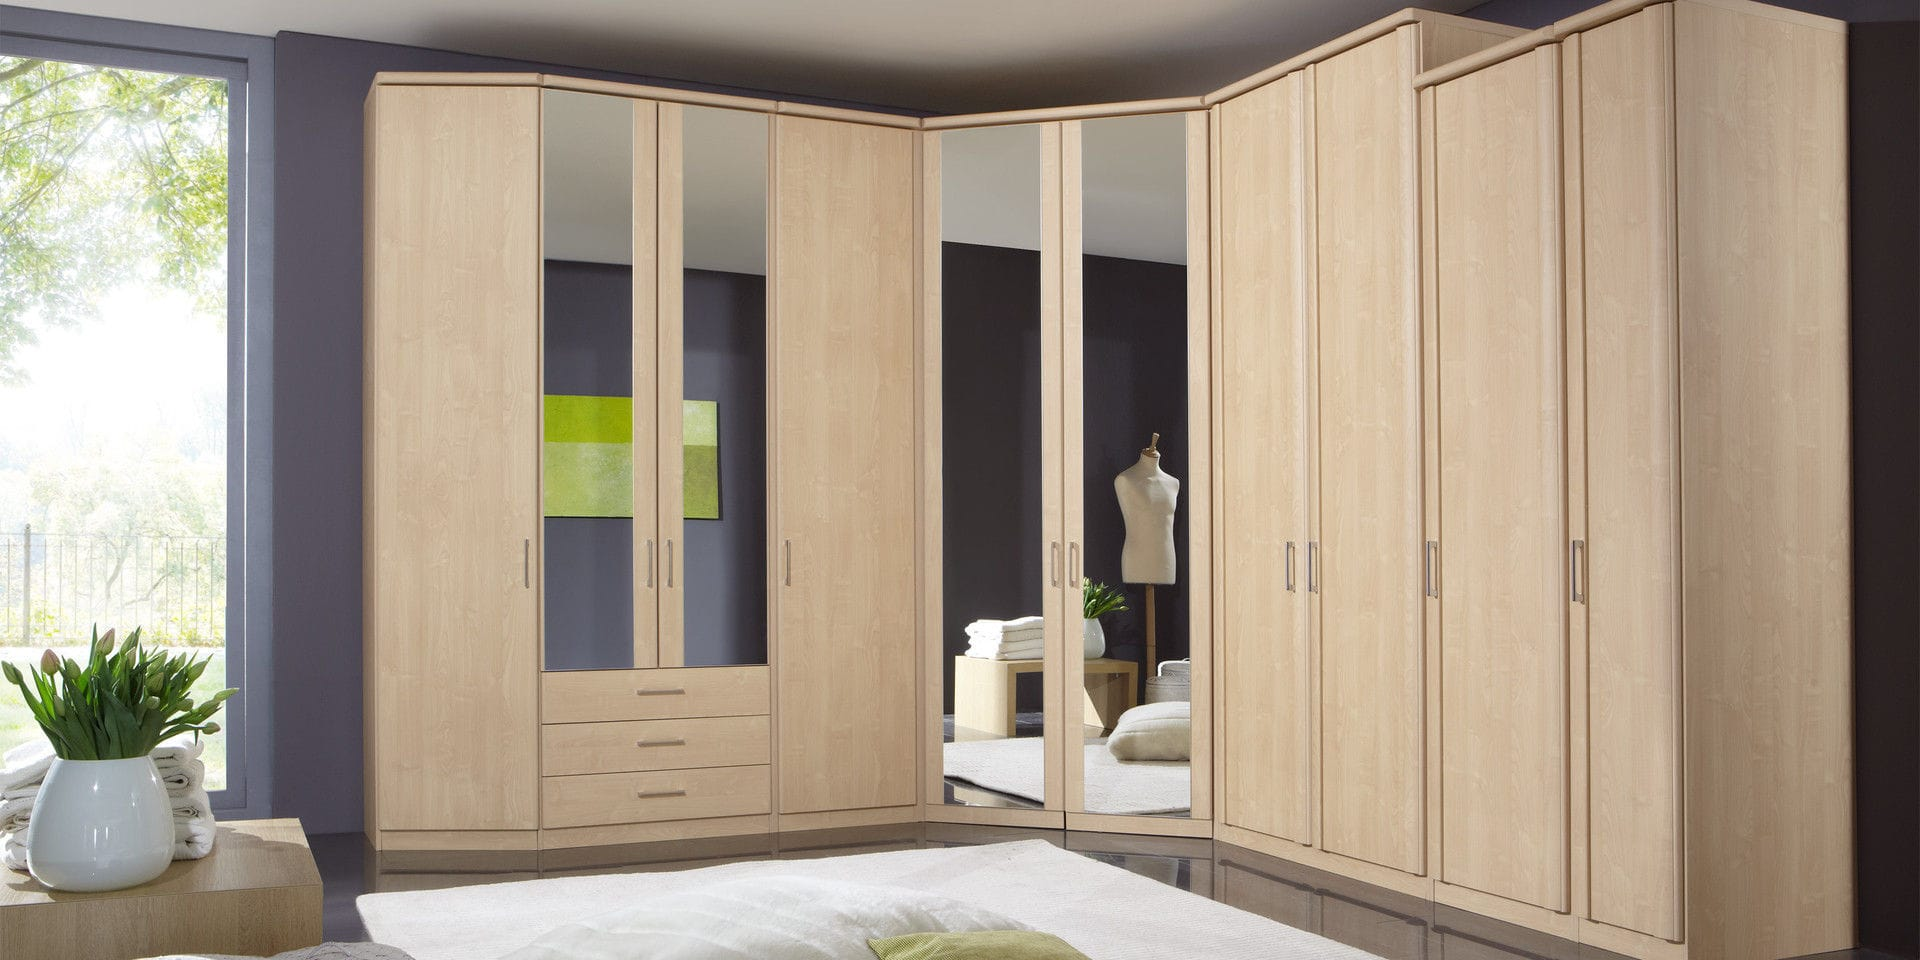 Corner Wardrobe Contemporary Wooden With Swing Doors LUXOR - Luxor schlafzimmer